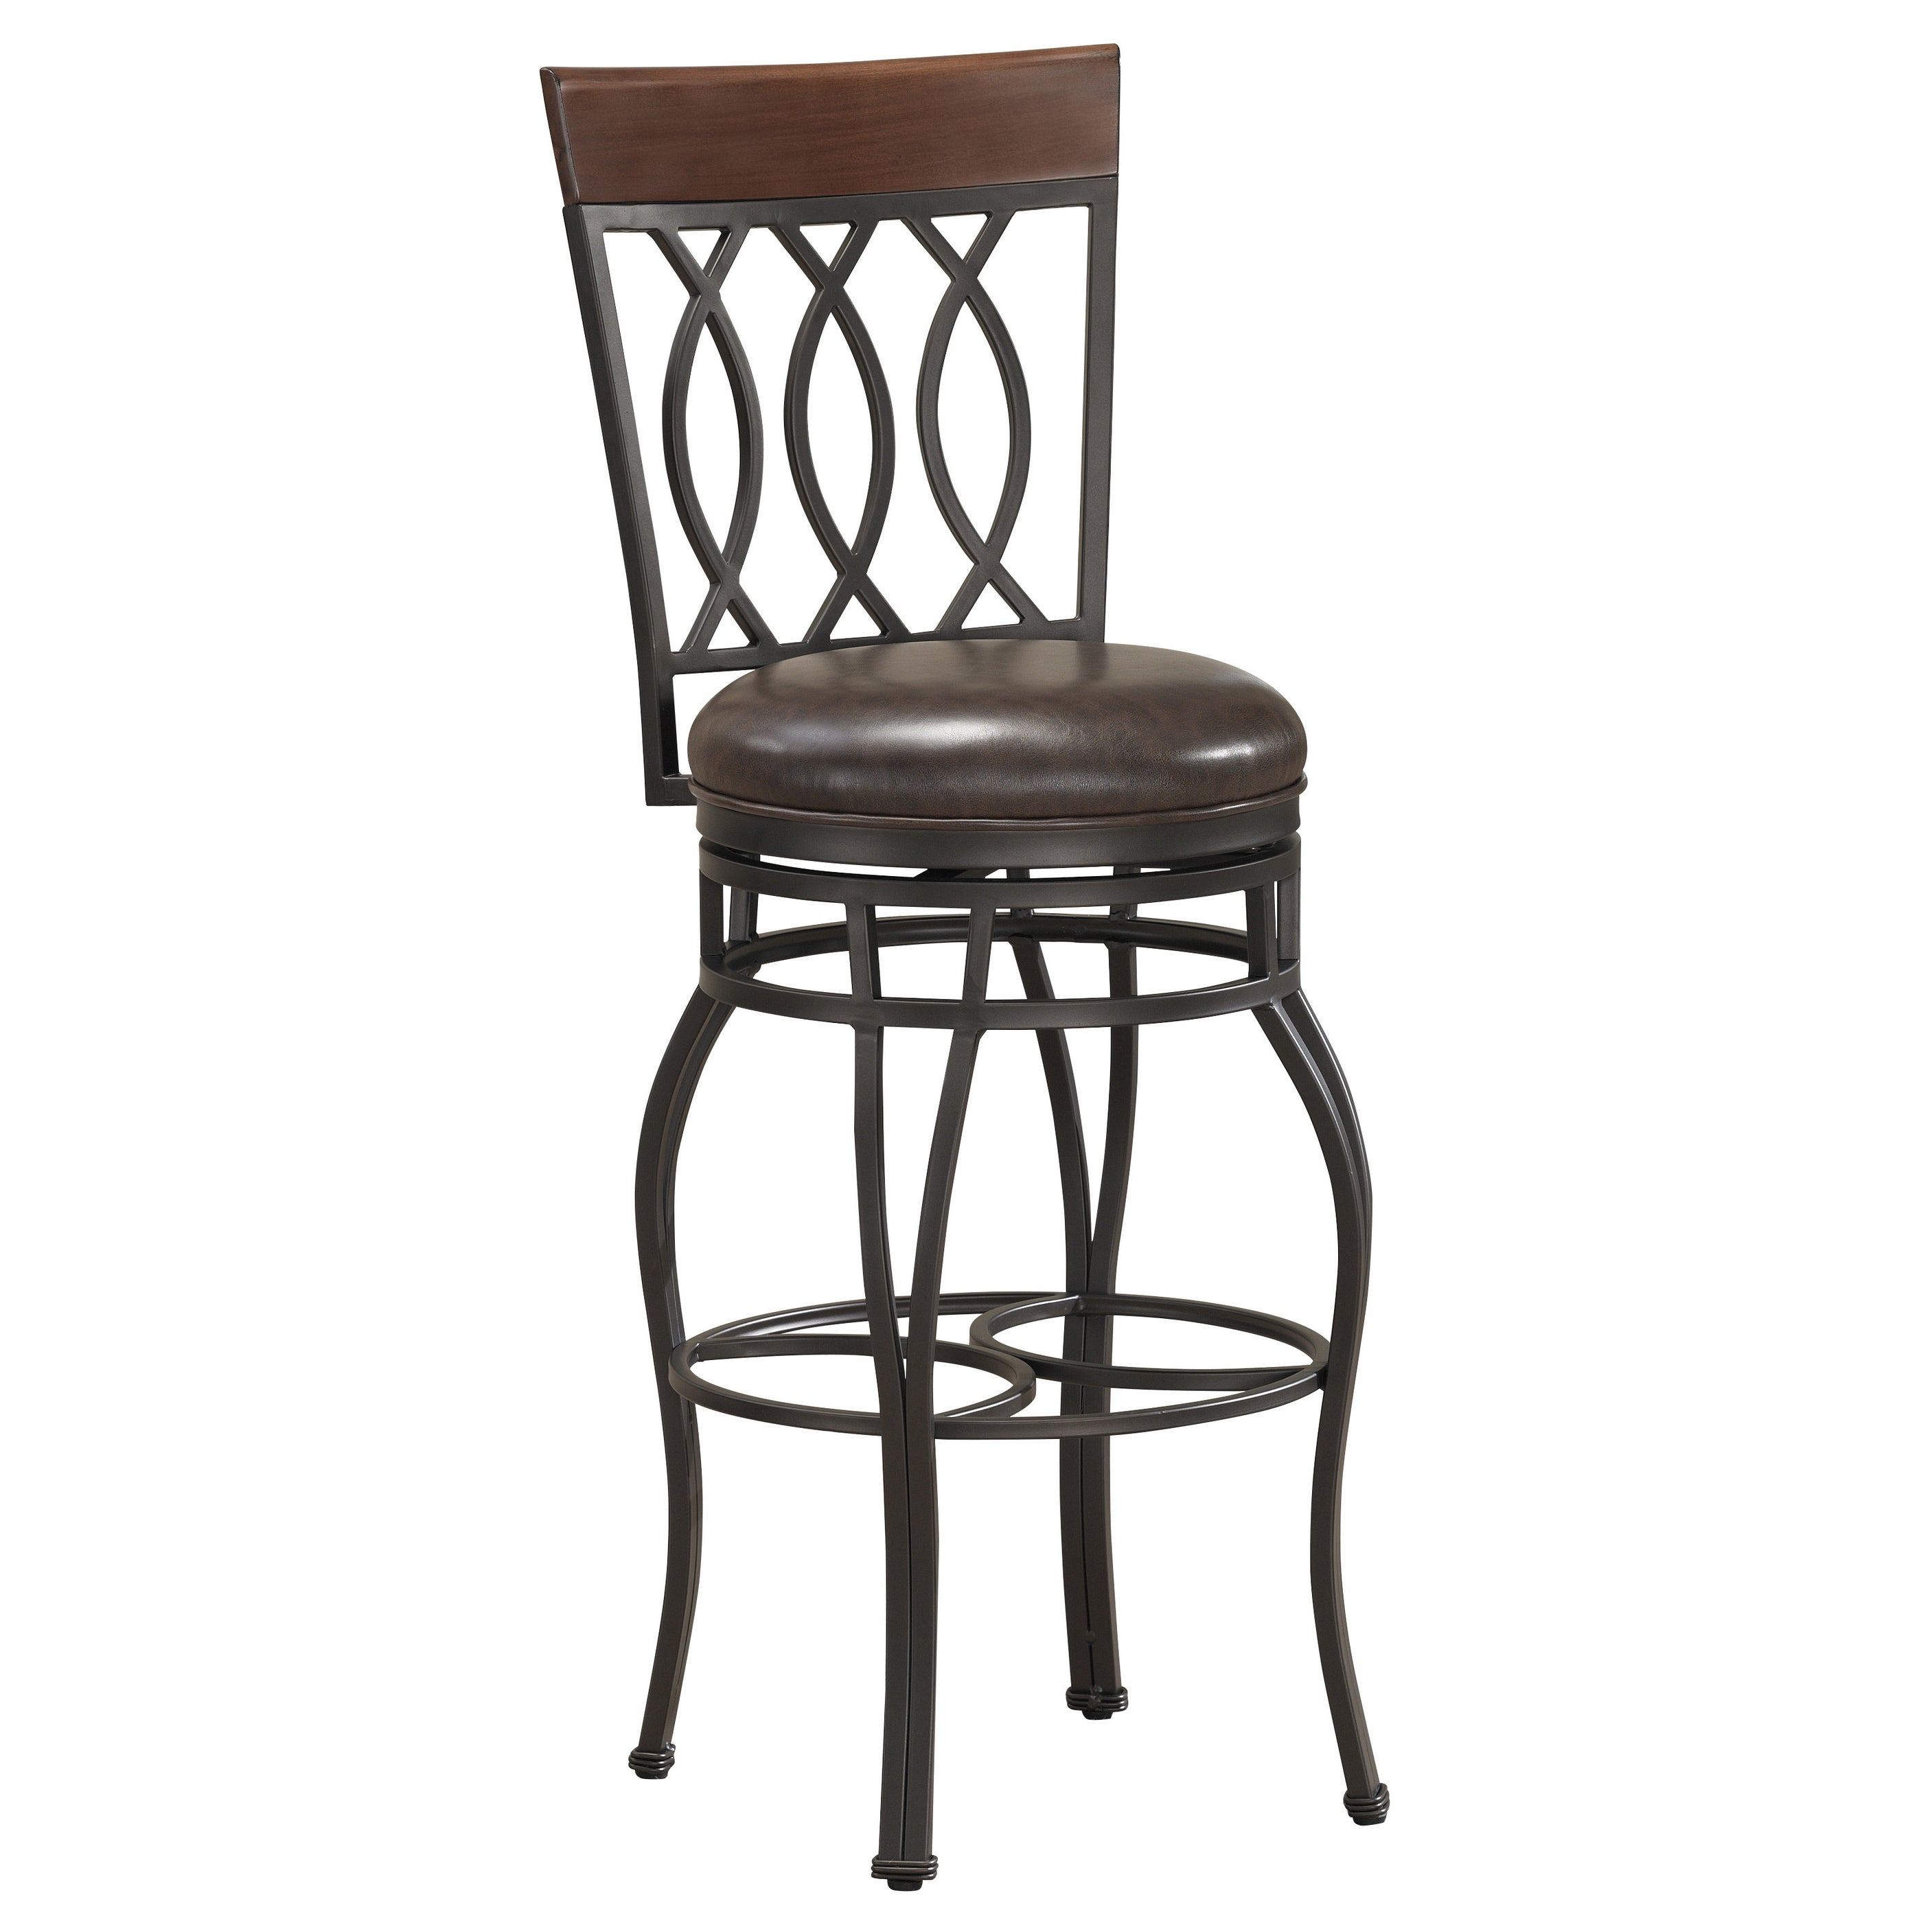 34 inch bar stools Shop Gracewood Hollow Fitzgerald 34 inch Swivel Bar Stool   Free  34 inch bar stools